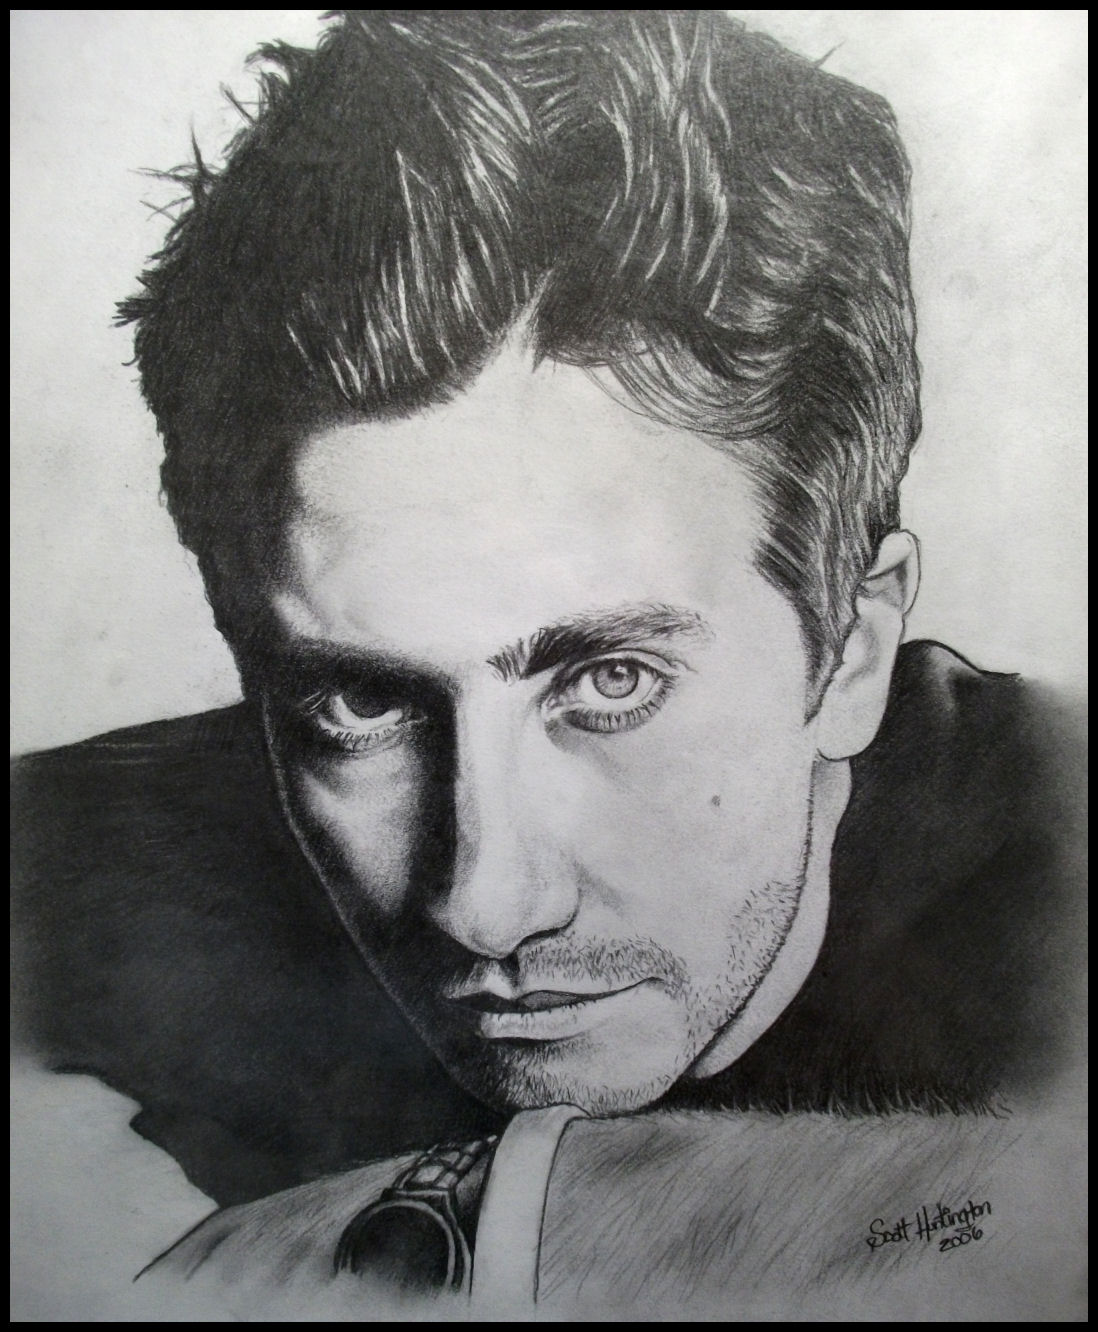 Jake Gyllenhaal by Skaughtt